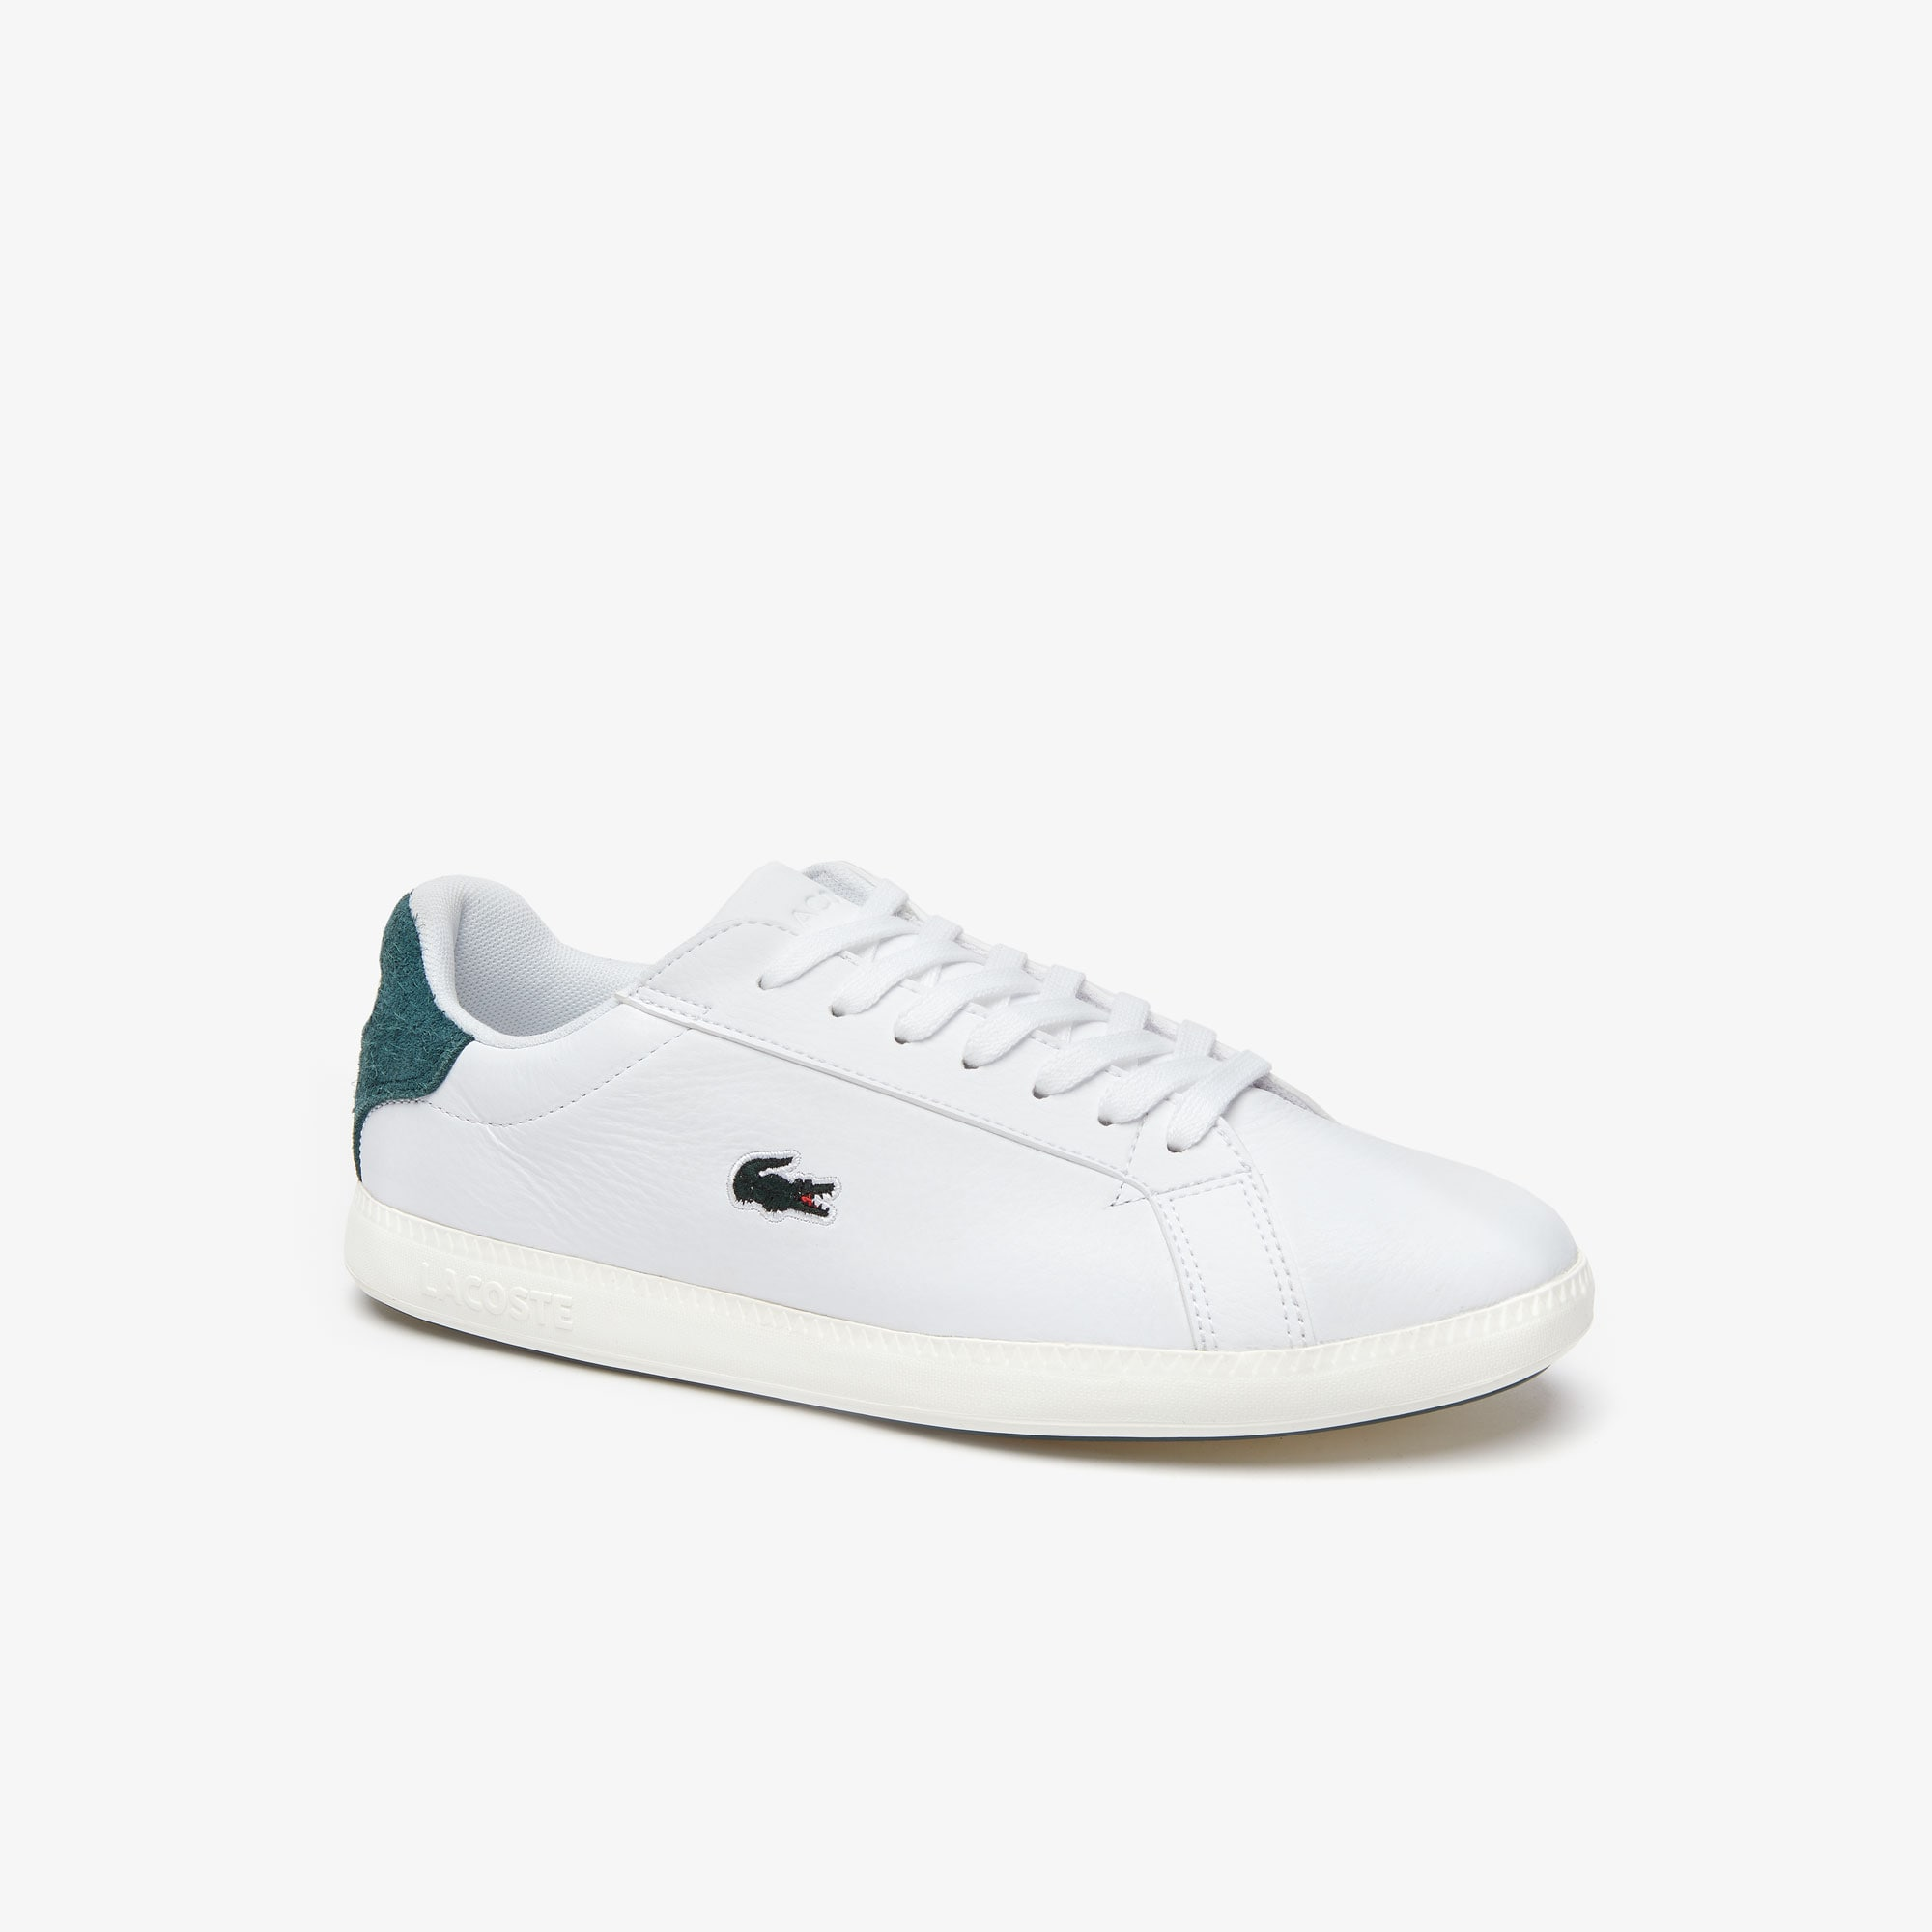 Women's Graduate Tumbled Leather and Suede Trainers